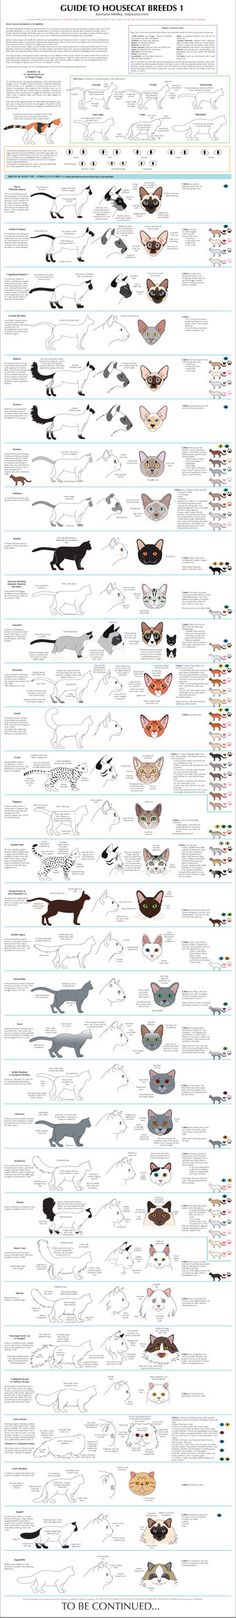 Guide to Housecat Breeds 1 by Majnouna on DeviantArt